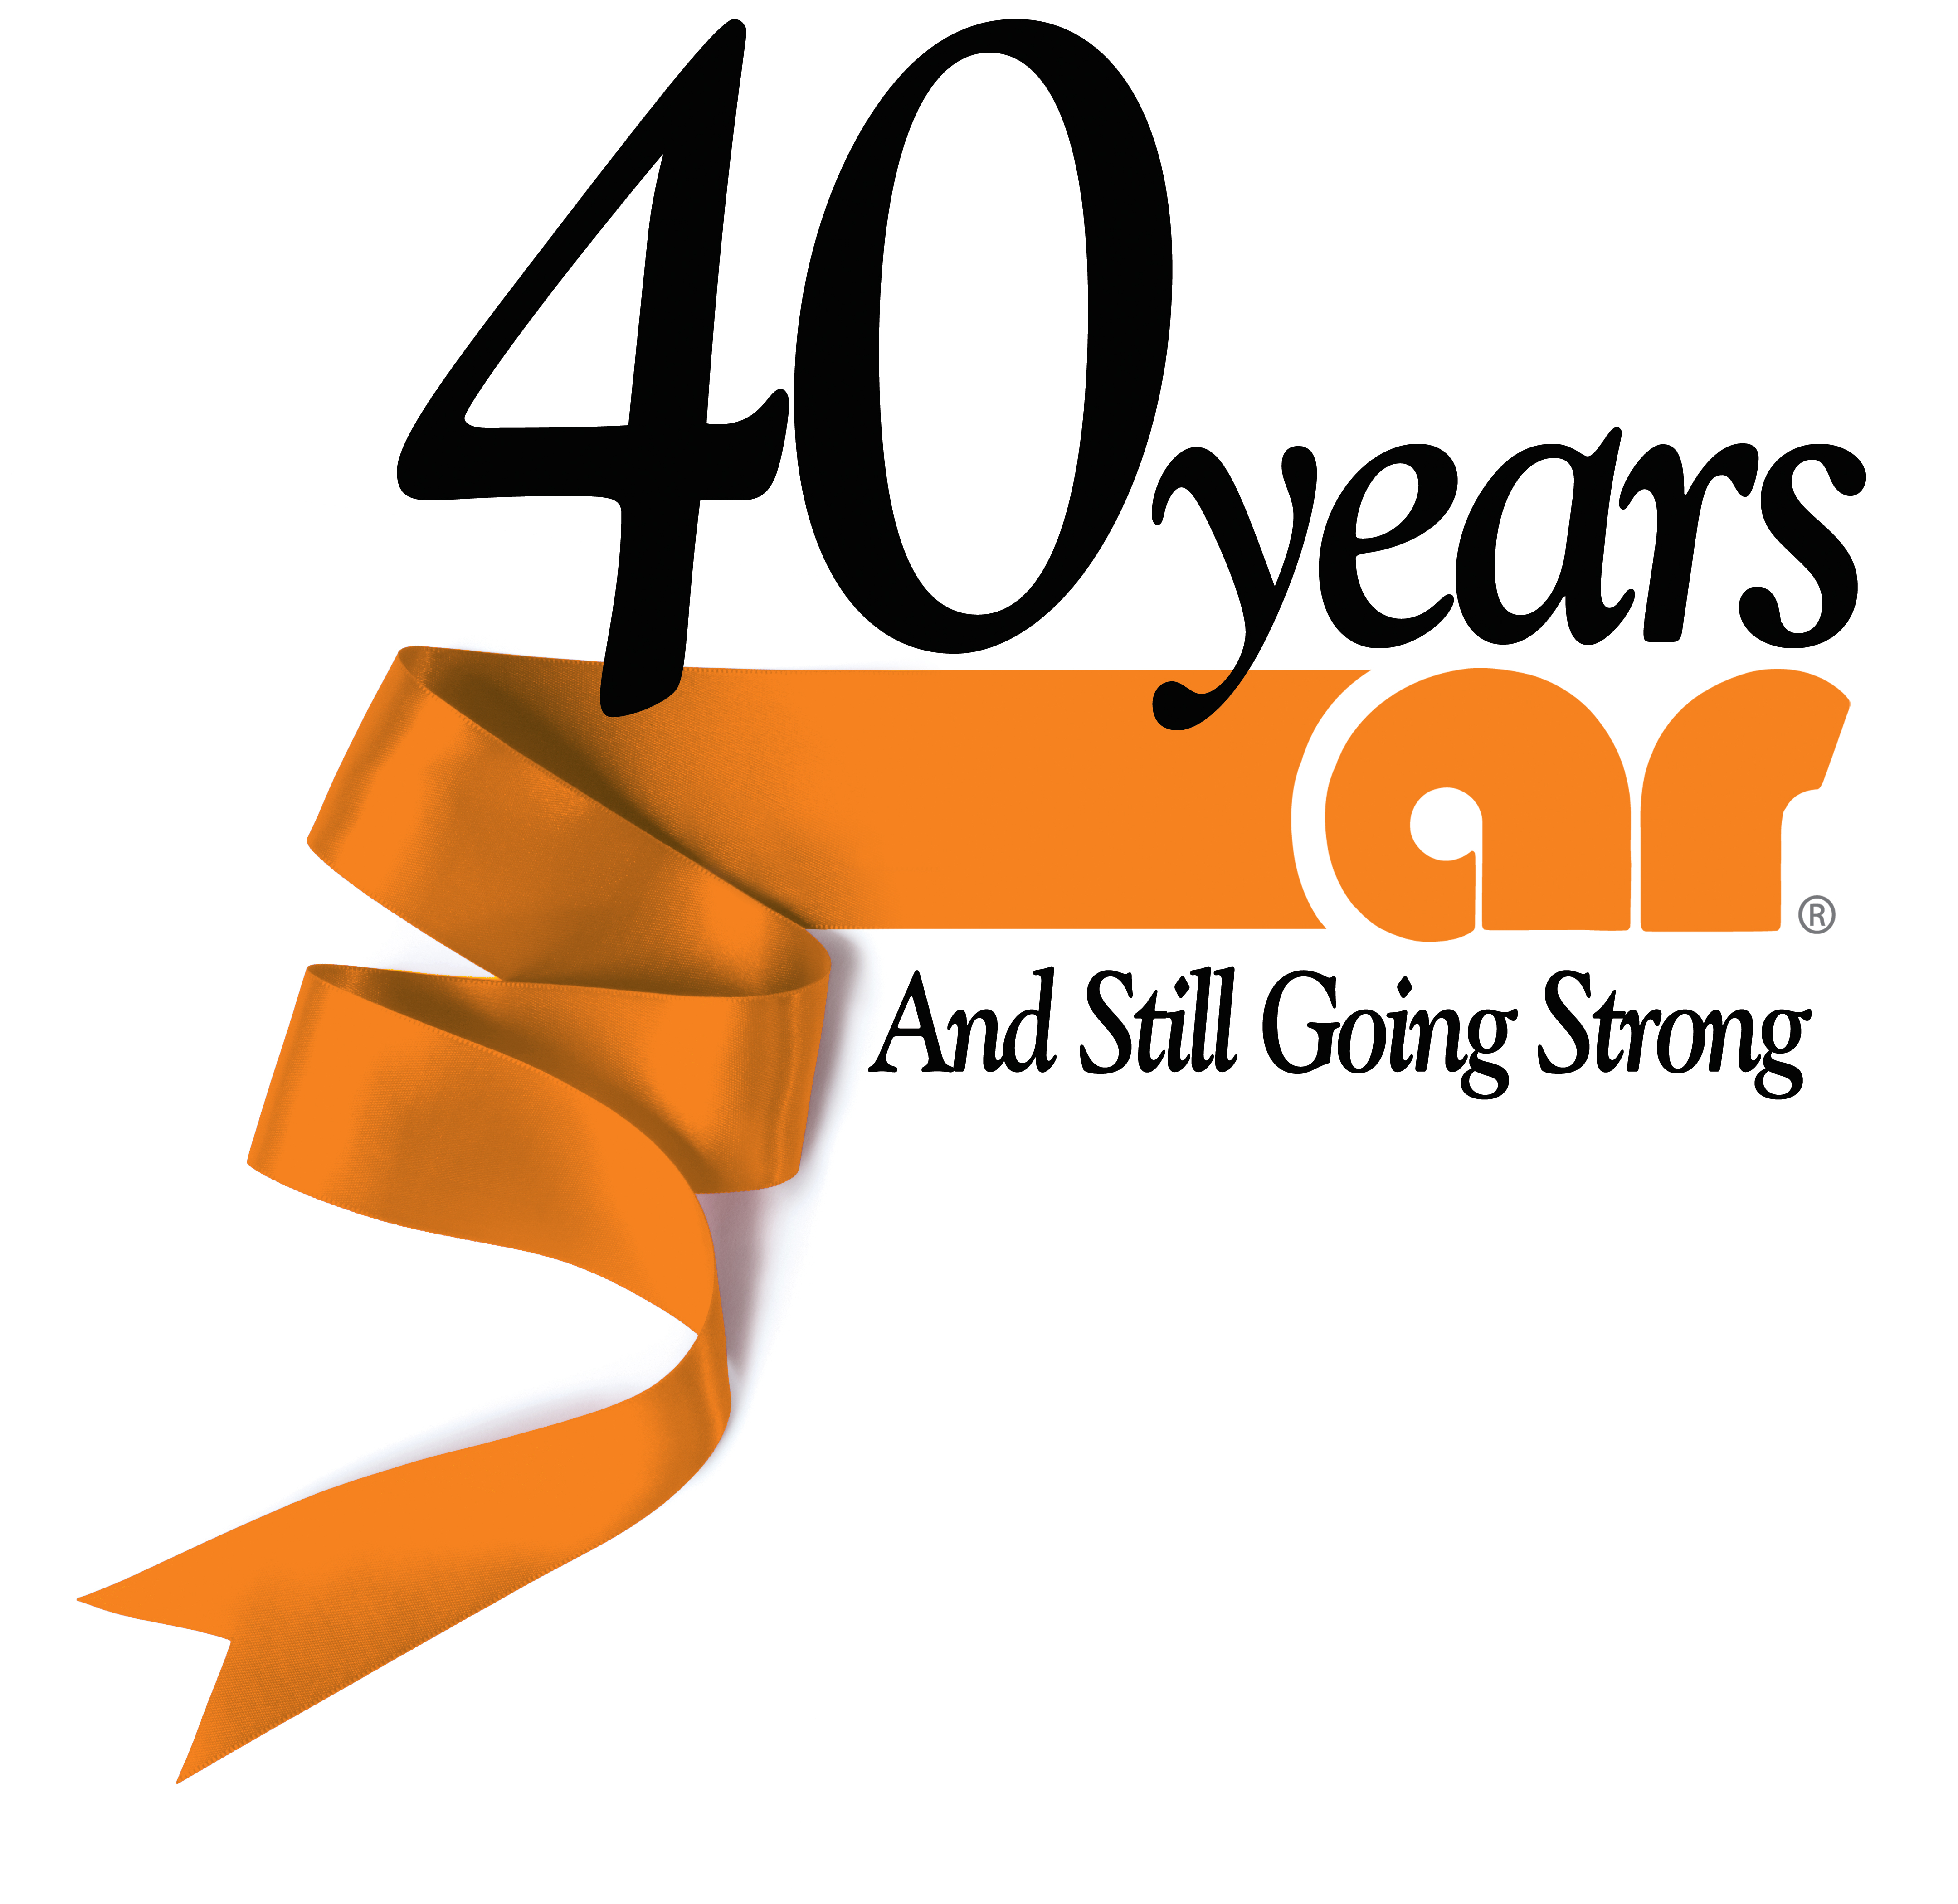 40th birthday clipart images ; 50th-wedding-anniversary-clipart-11